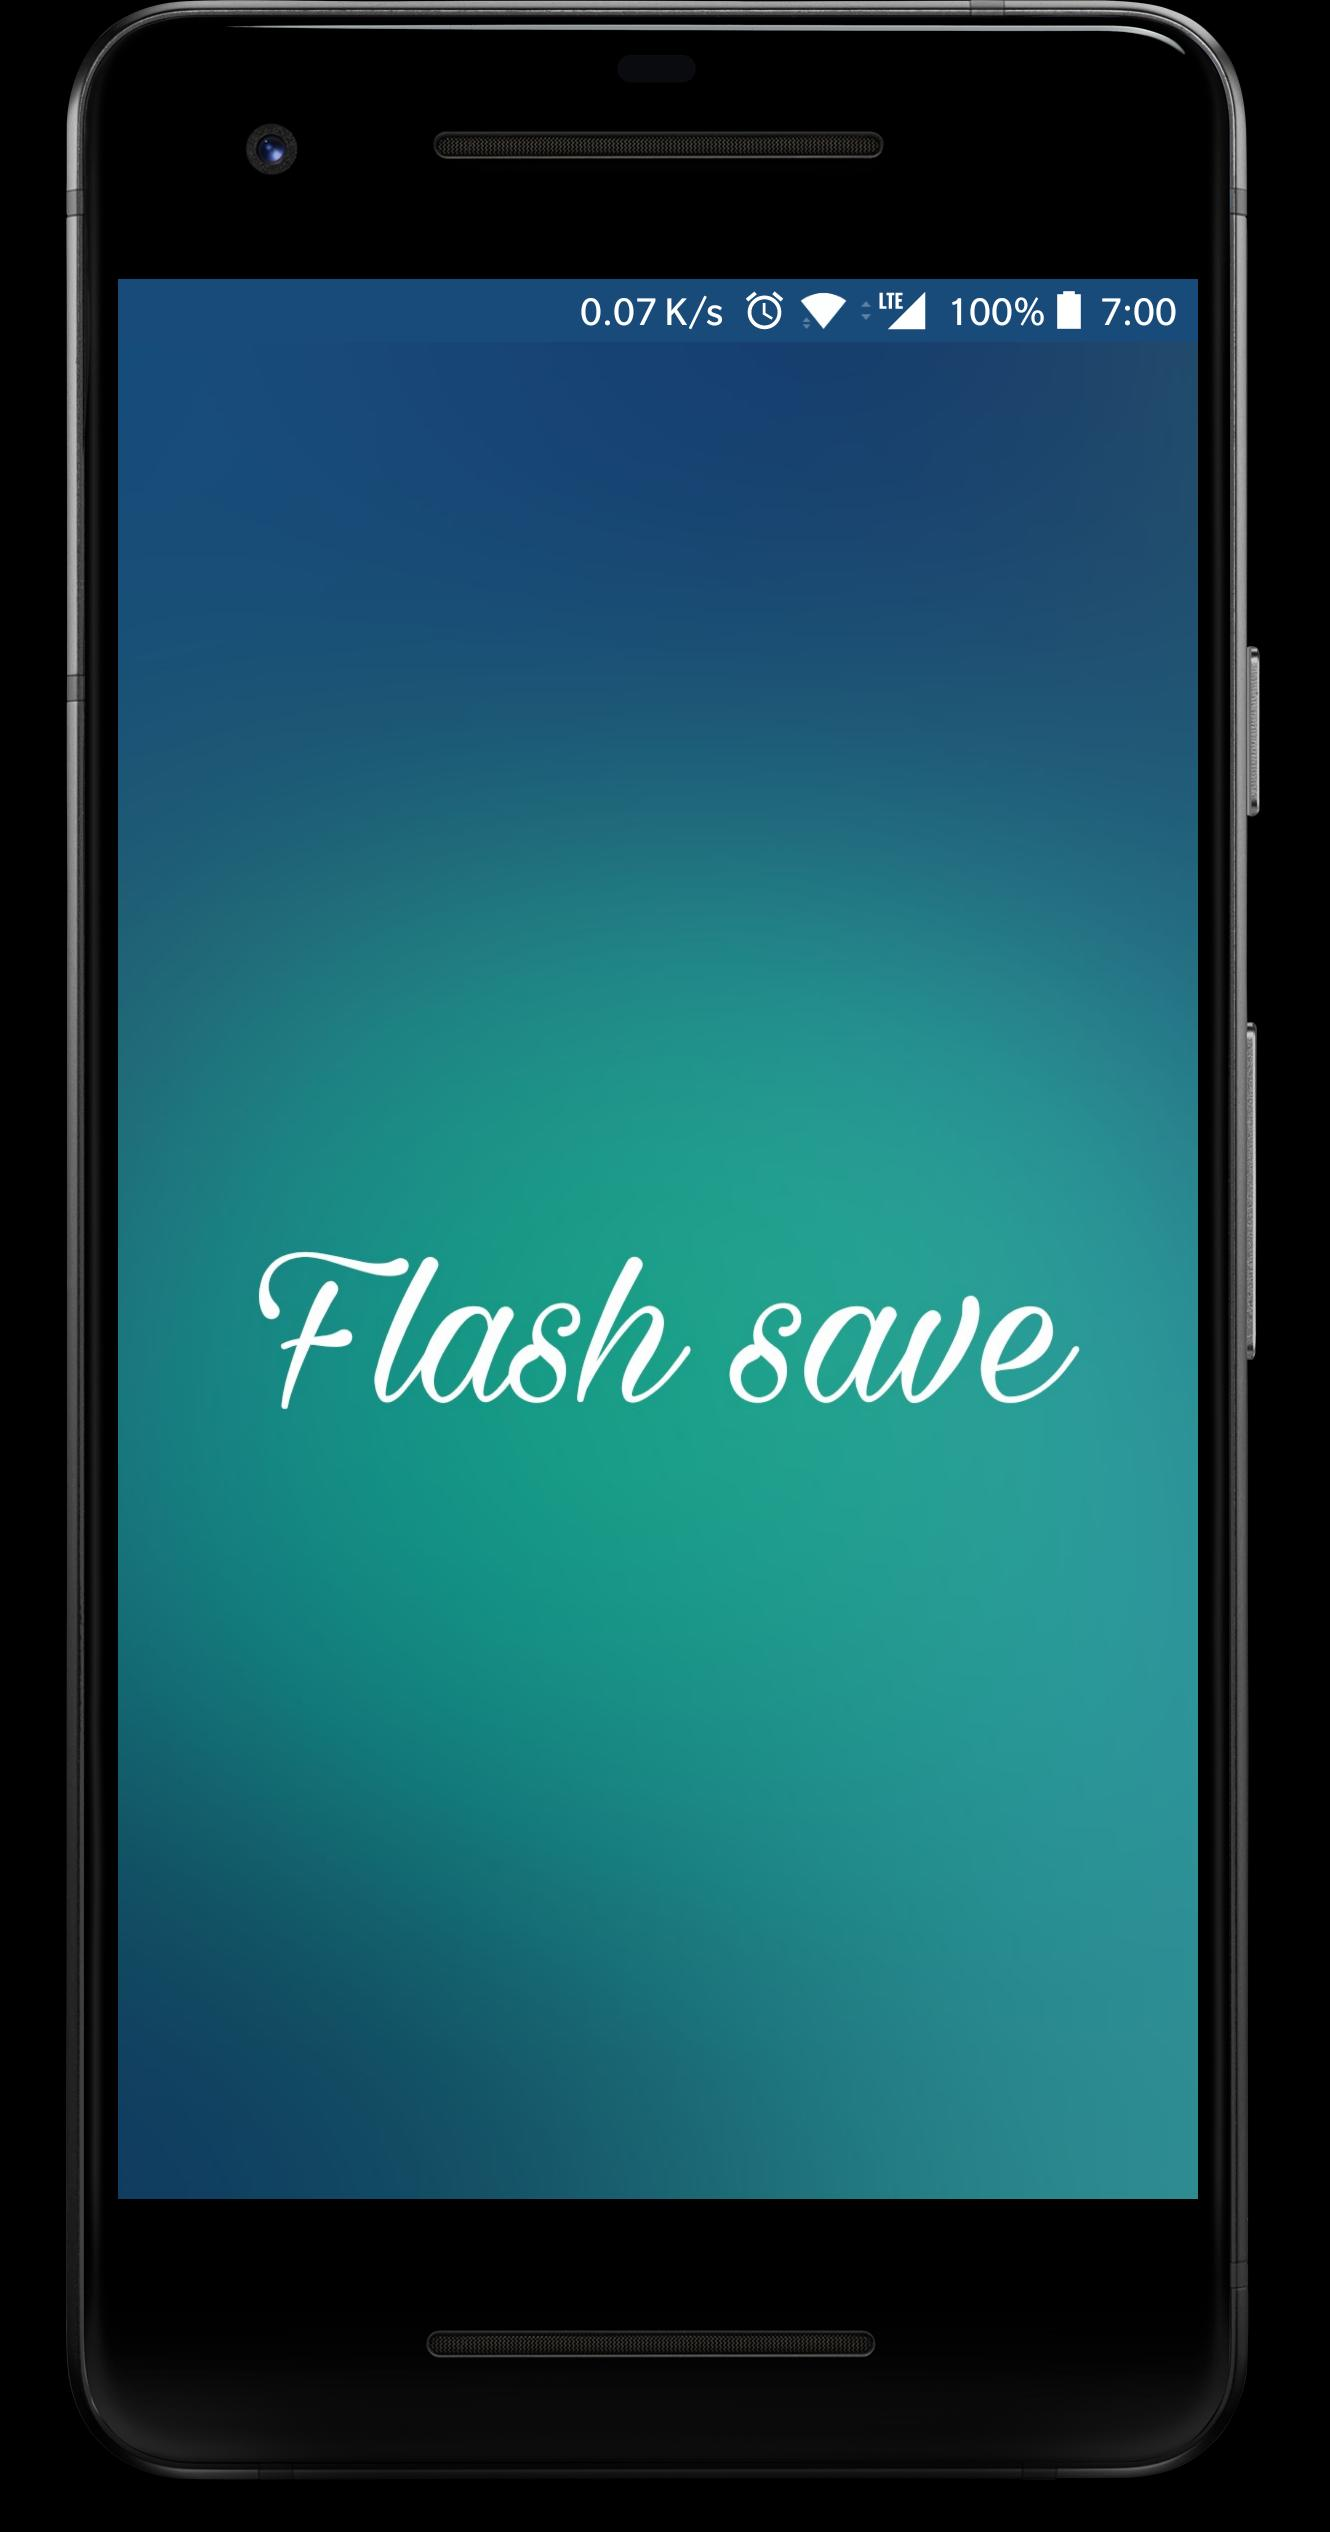 Flash save for Instagram for Android - APK Download